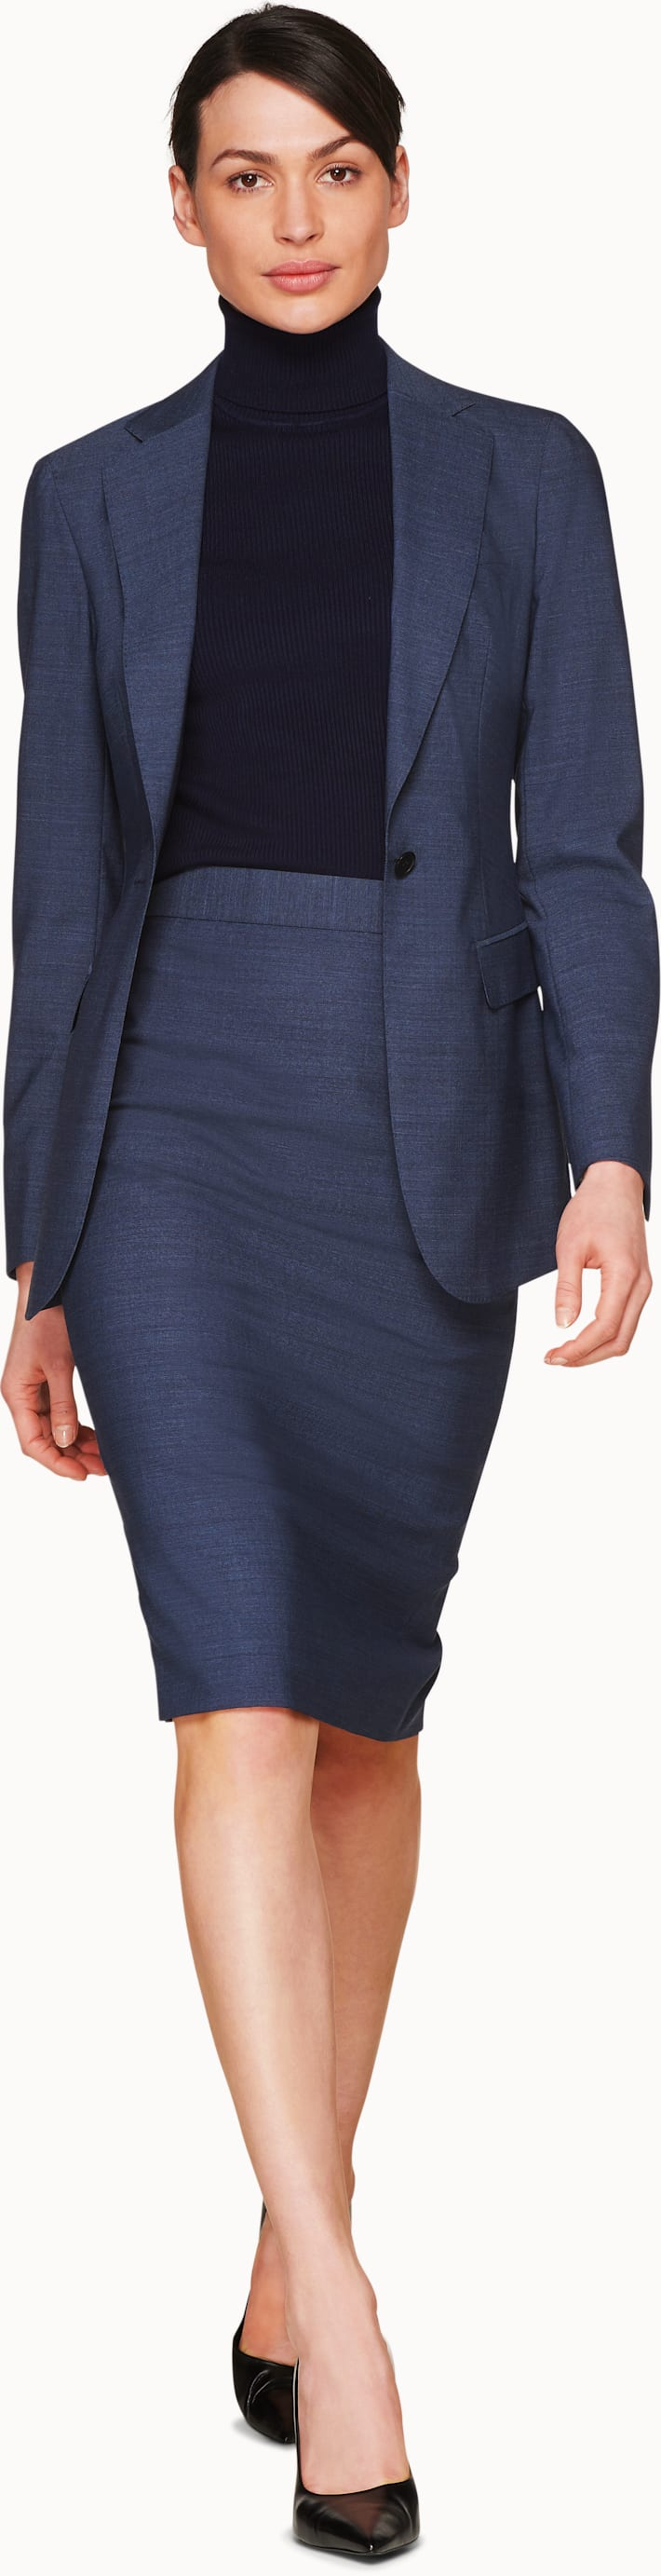 Cameron Blue & Grey Melange Suit